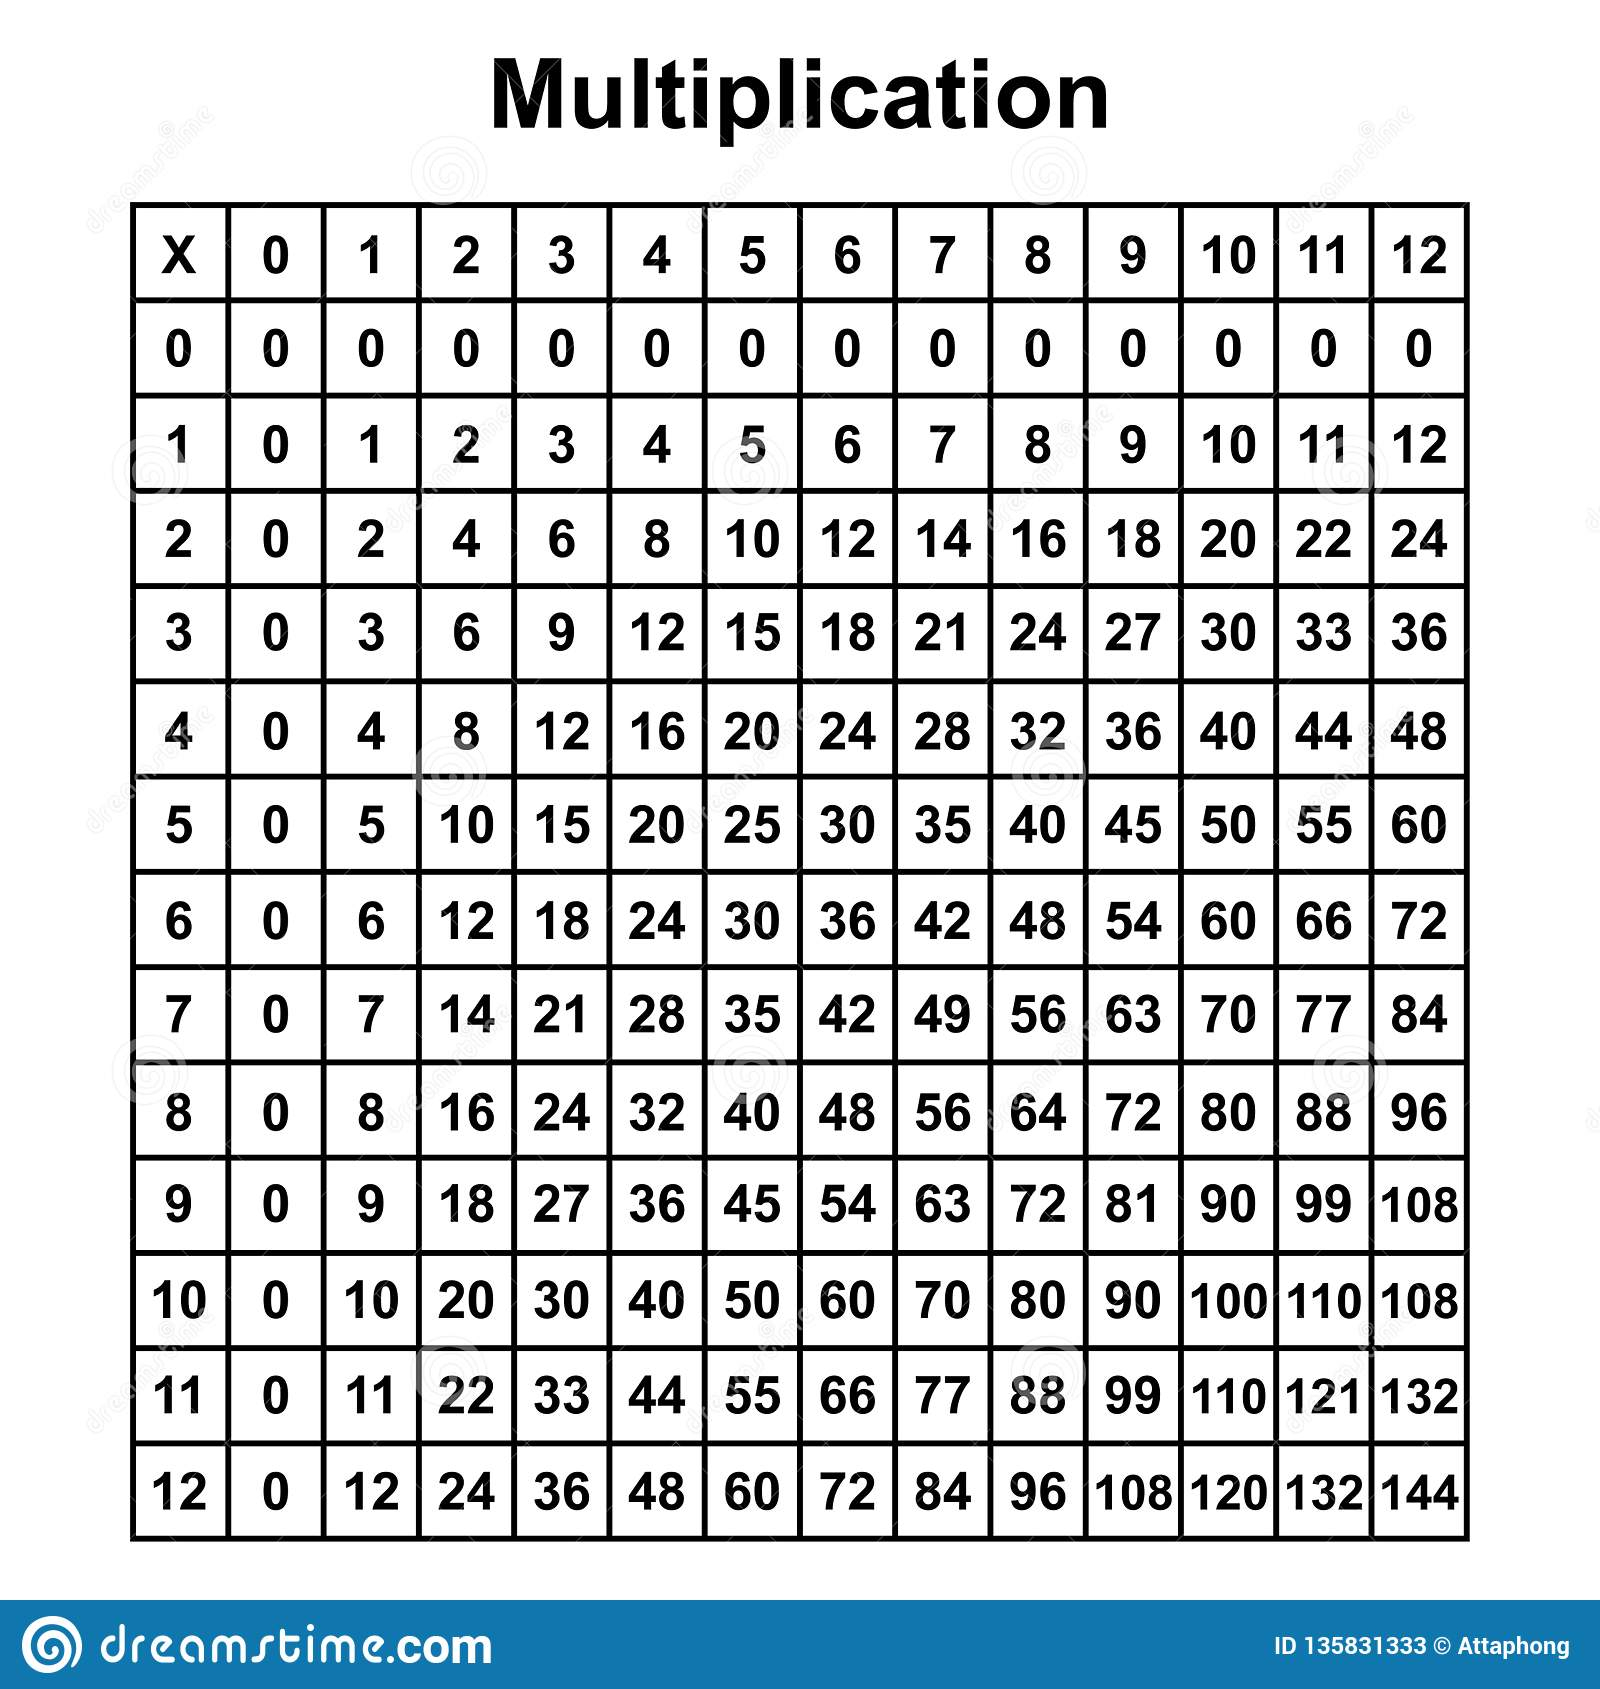 Multiplication Table Chart Or Multiplication Table Printable inside Printable Multiplication